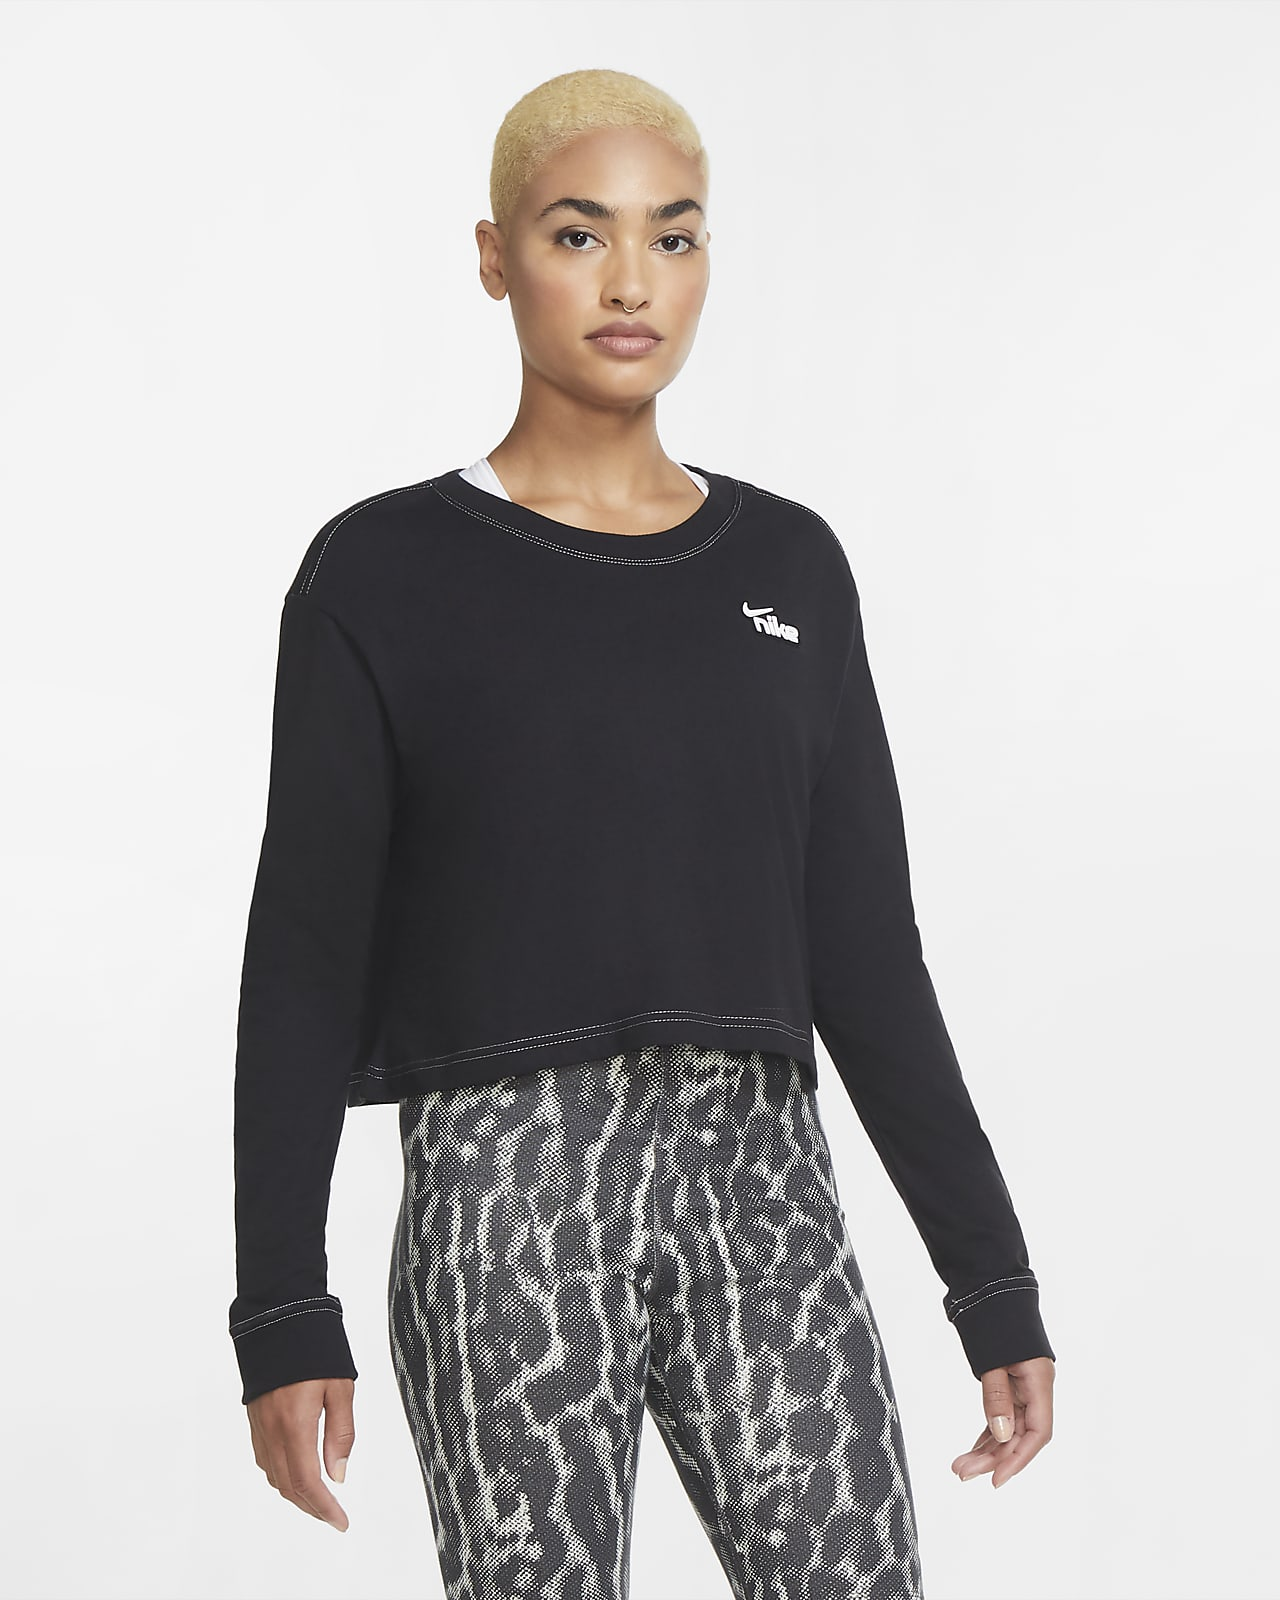 Nike Sportswear Women's Cropped Long-Sleeve T-Shirt